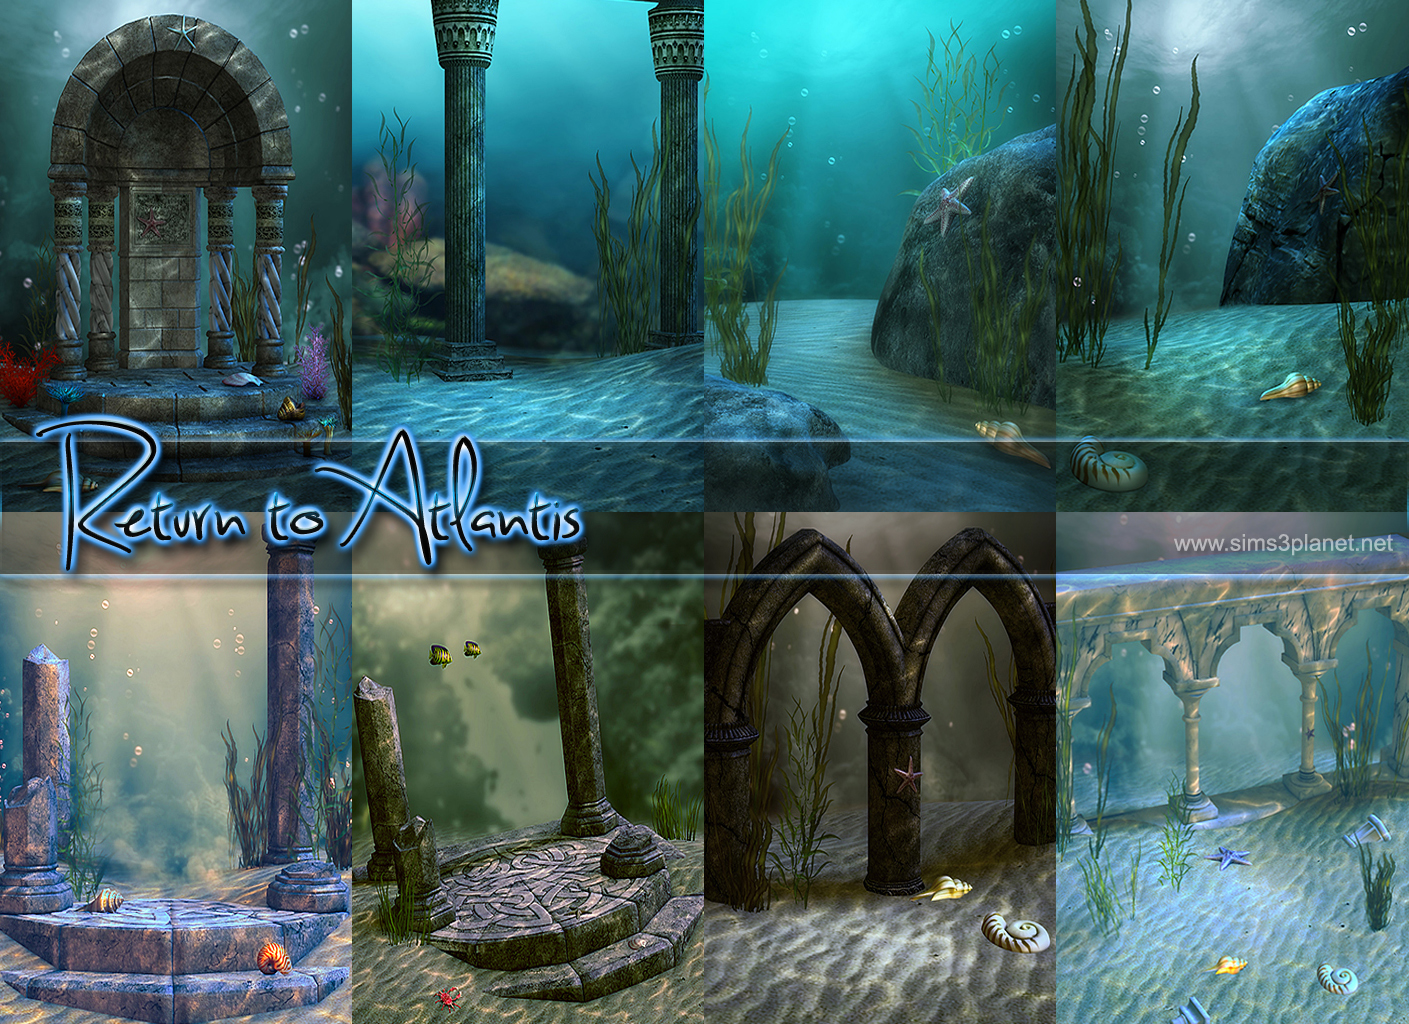 Return to Atlantis backgrounds by lorelea